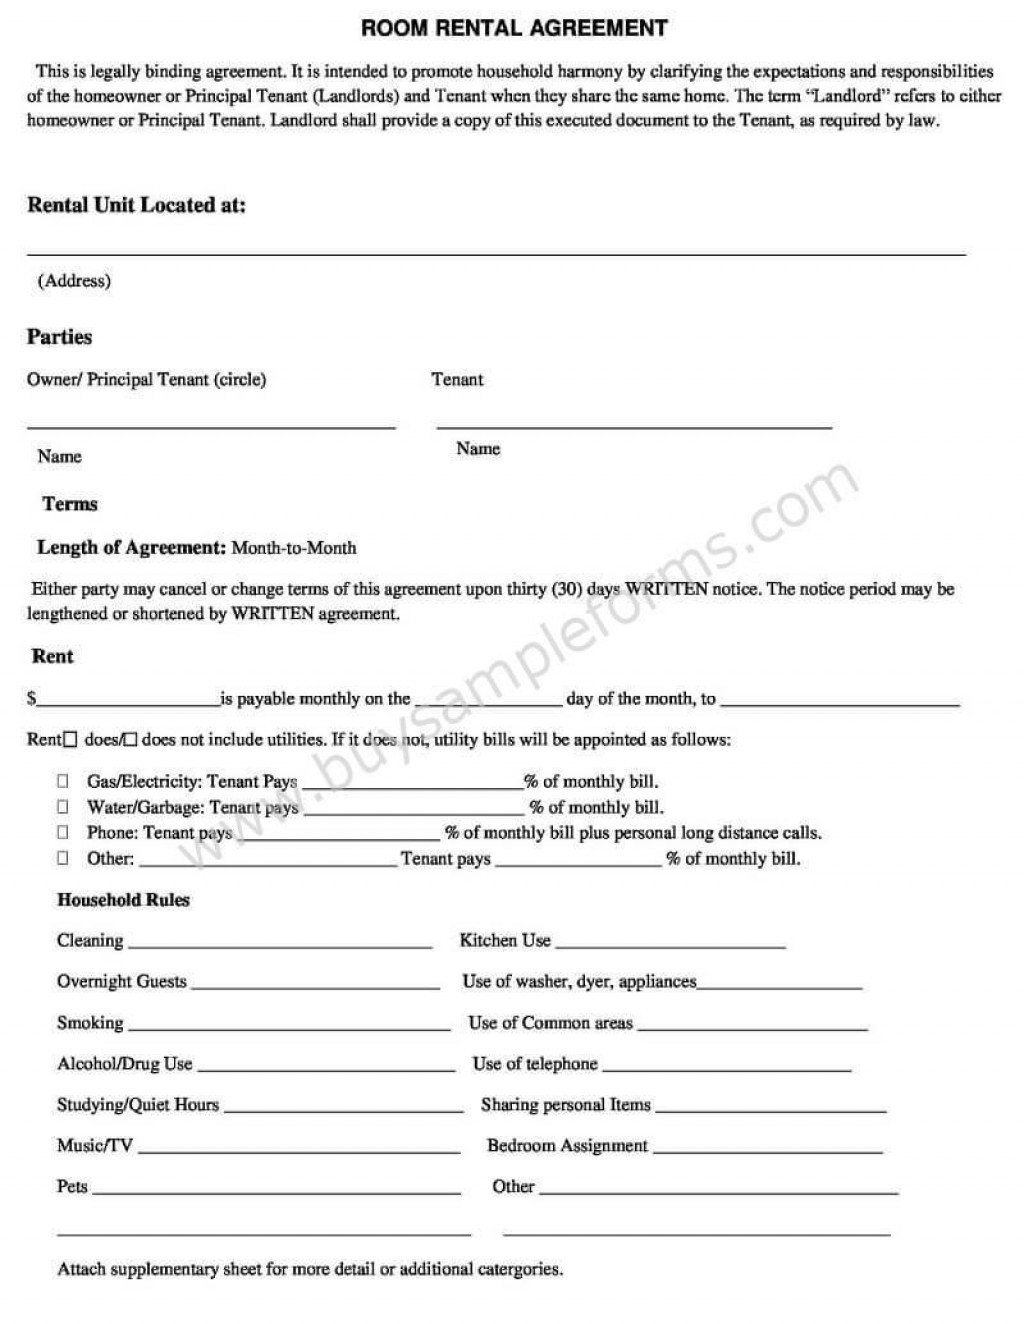 007 Outstanding Room Rental Agreement Simple Form Picture  Template Word Doc Rent Format In Free UkLarge